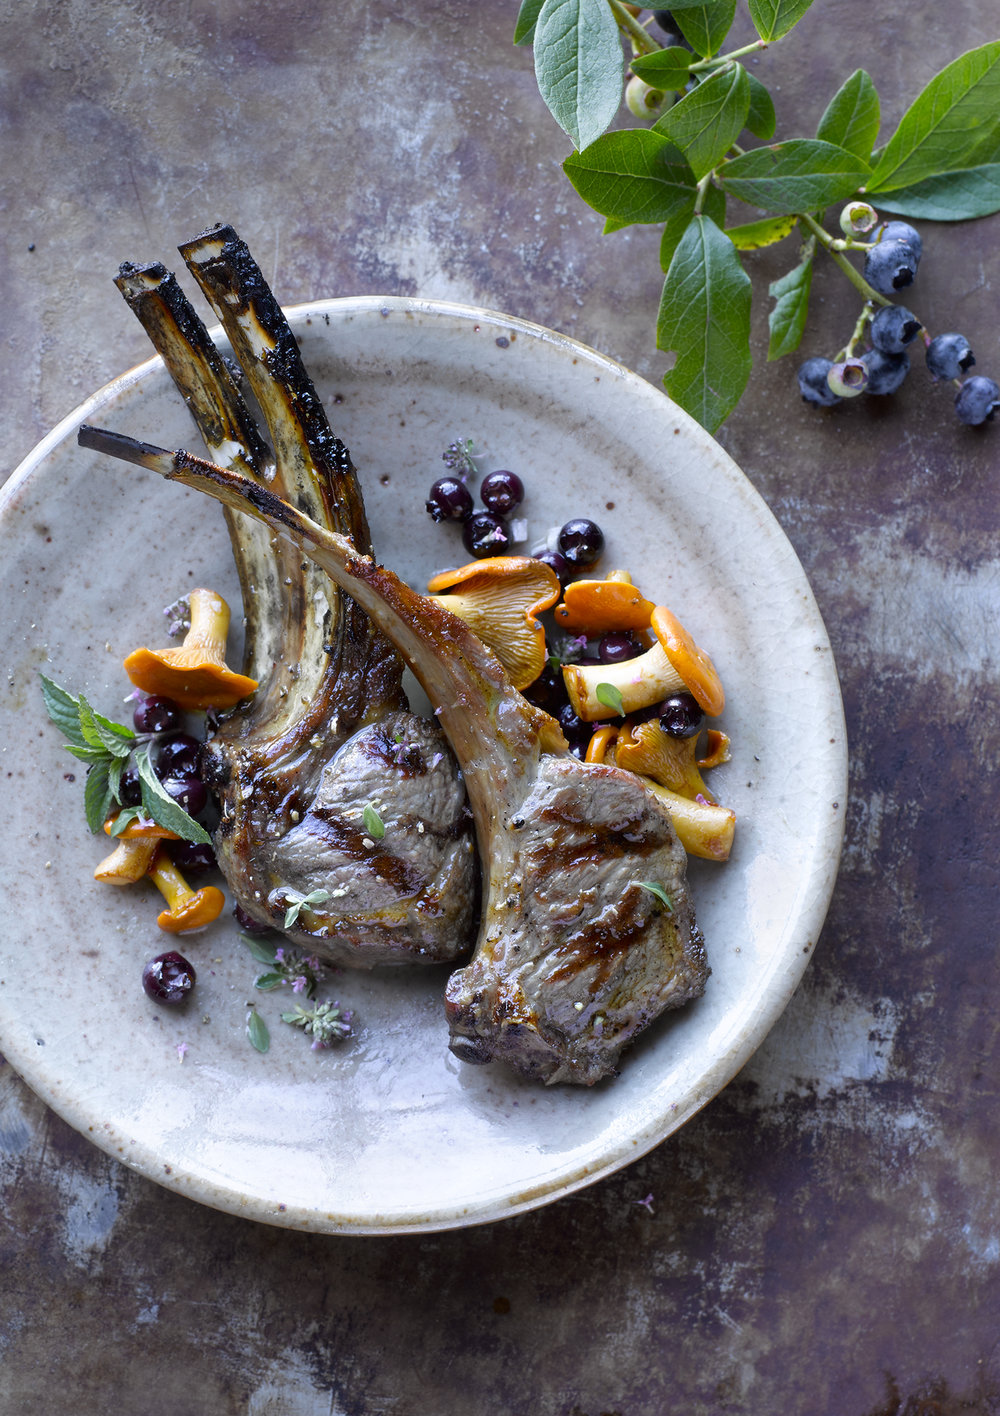 Grilled lamb chops with chanterelles & wild blueberry chutney (page 188, Untamed Mushrooms)